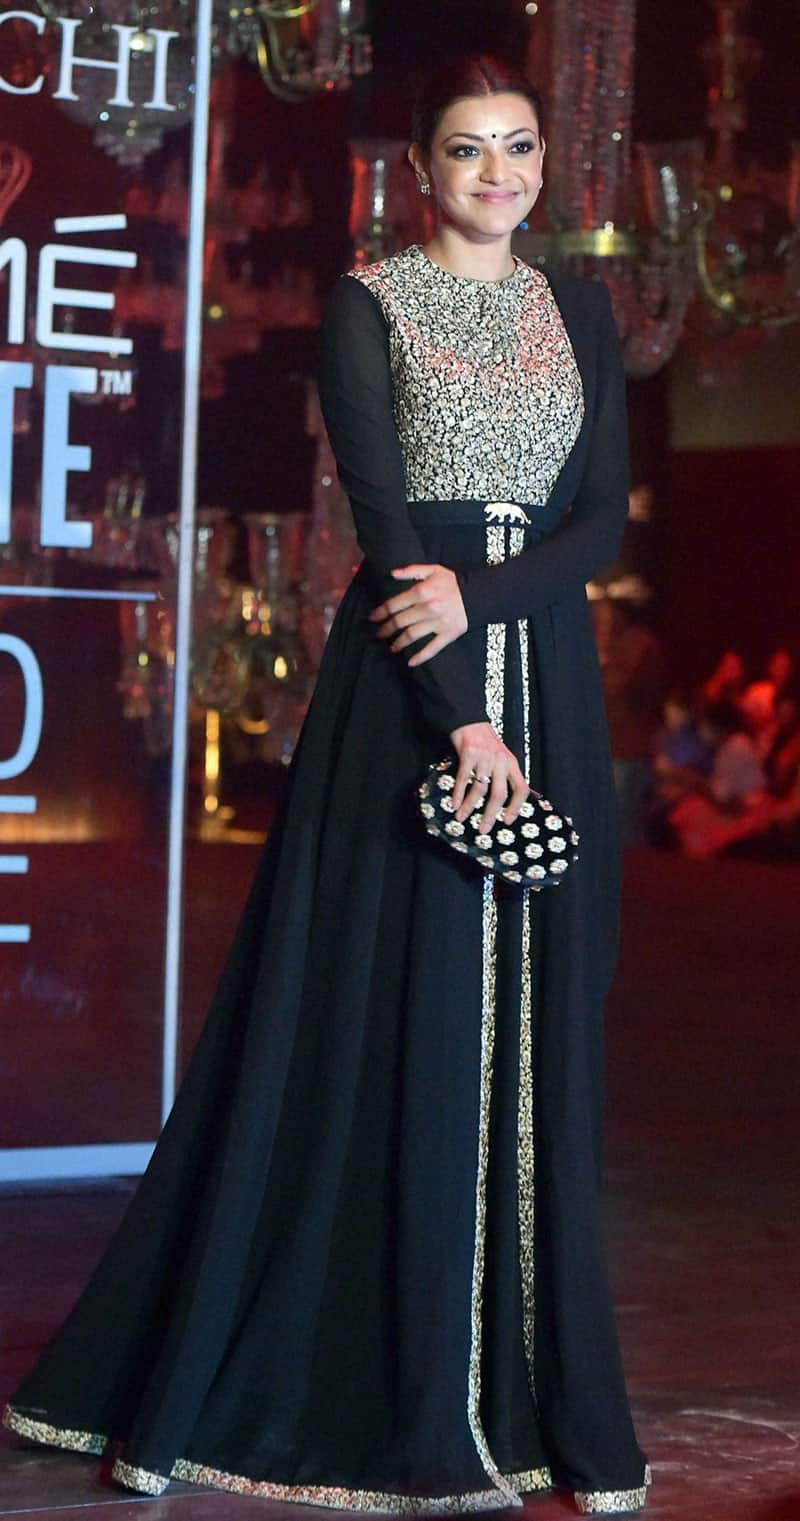 Kajal Aggarwal walks the ramp at the grand finale show of Lakme Fashion Week (LFW) Winter/Festive 2016 in Mumbai